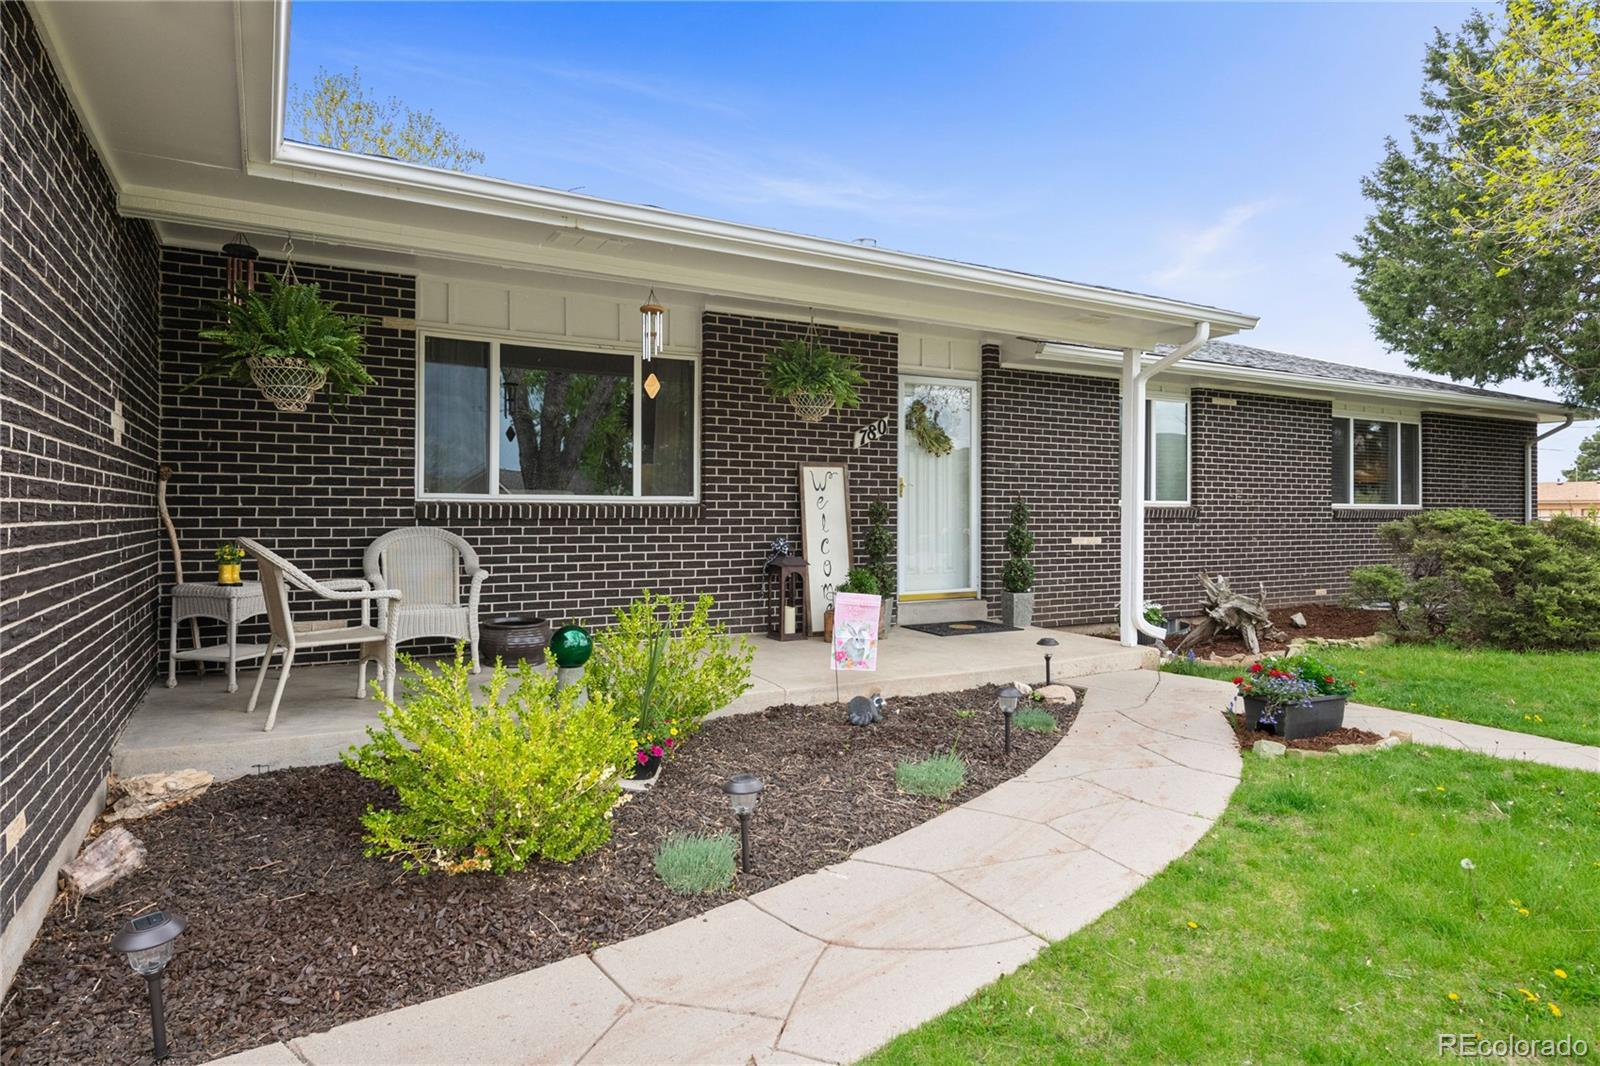 780 S Routt Way, Lakewood, CO 80226 - #: 8369010